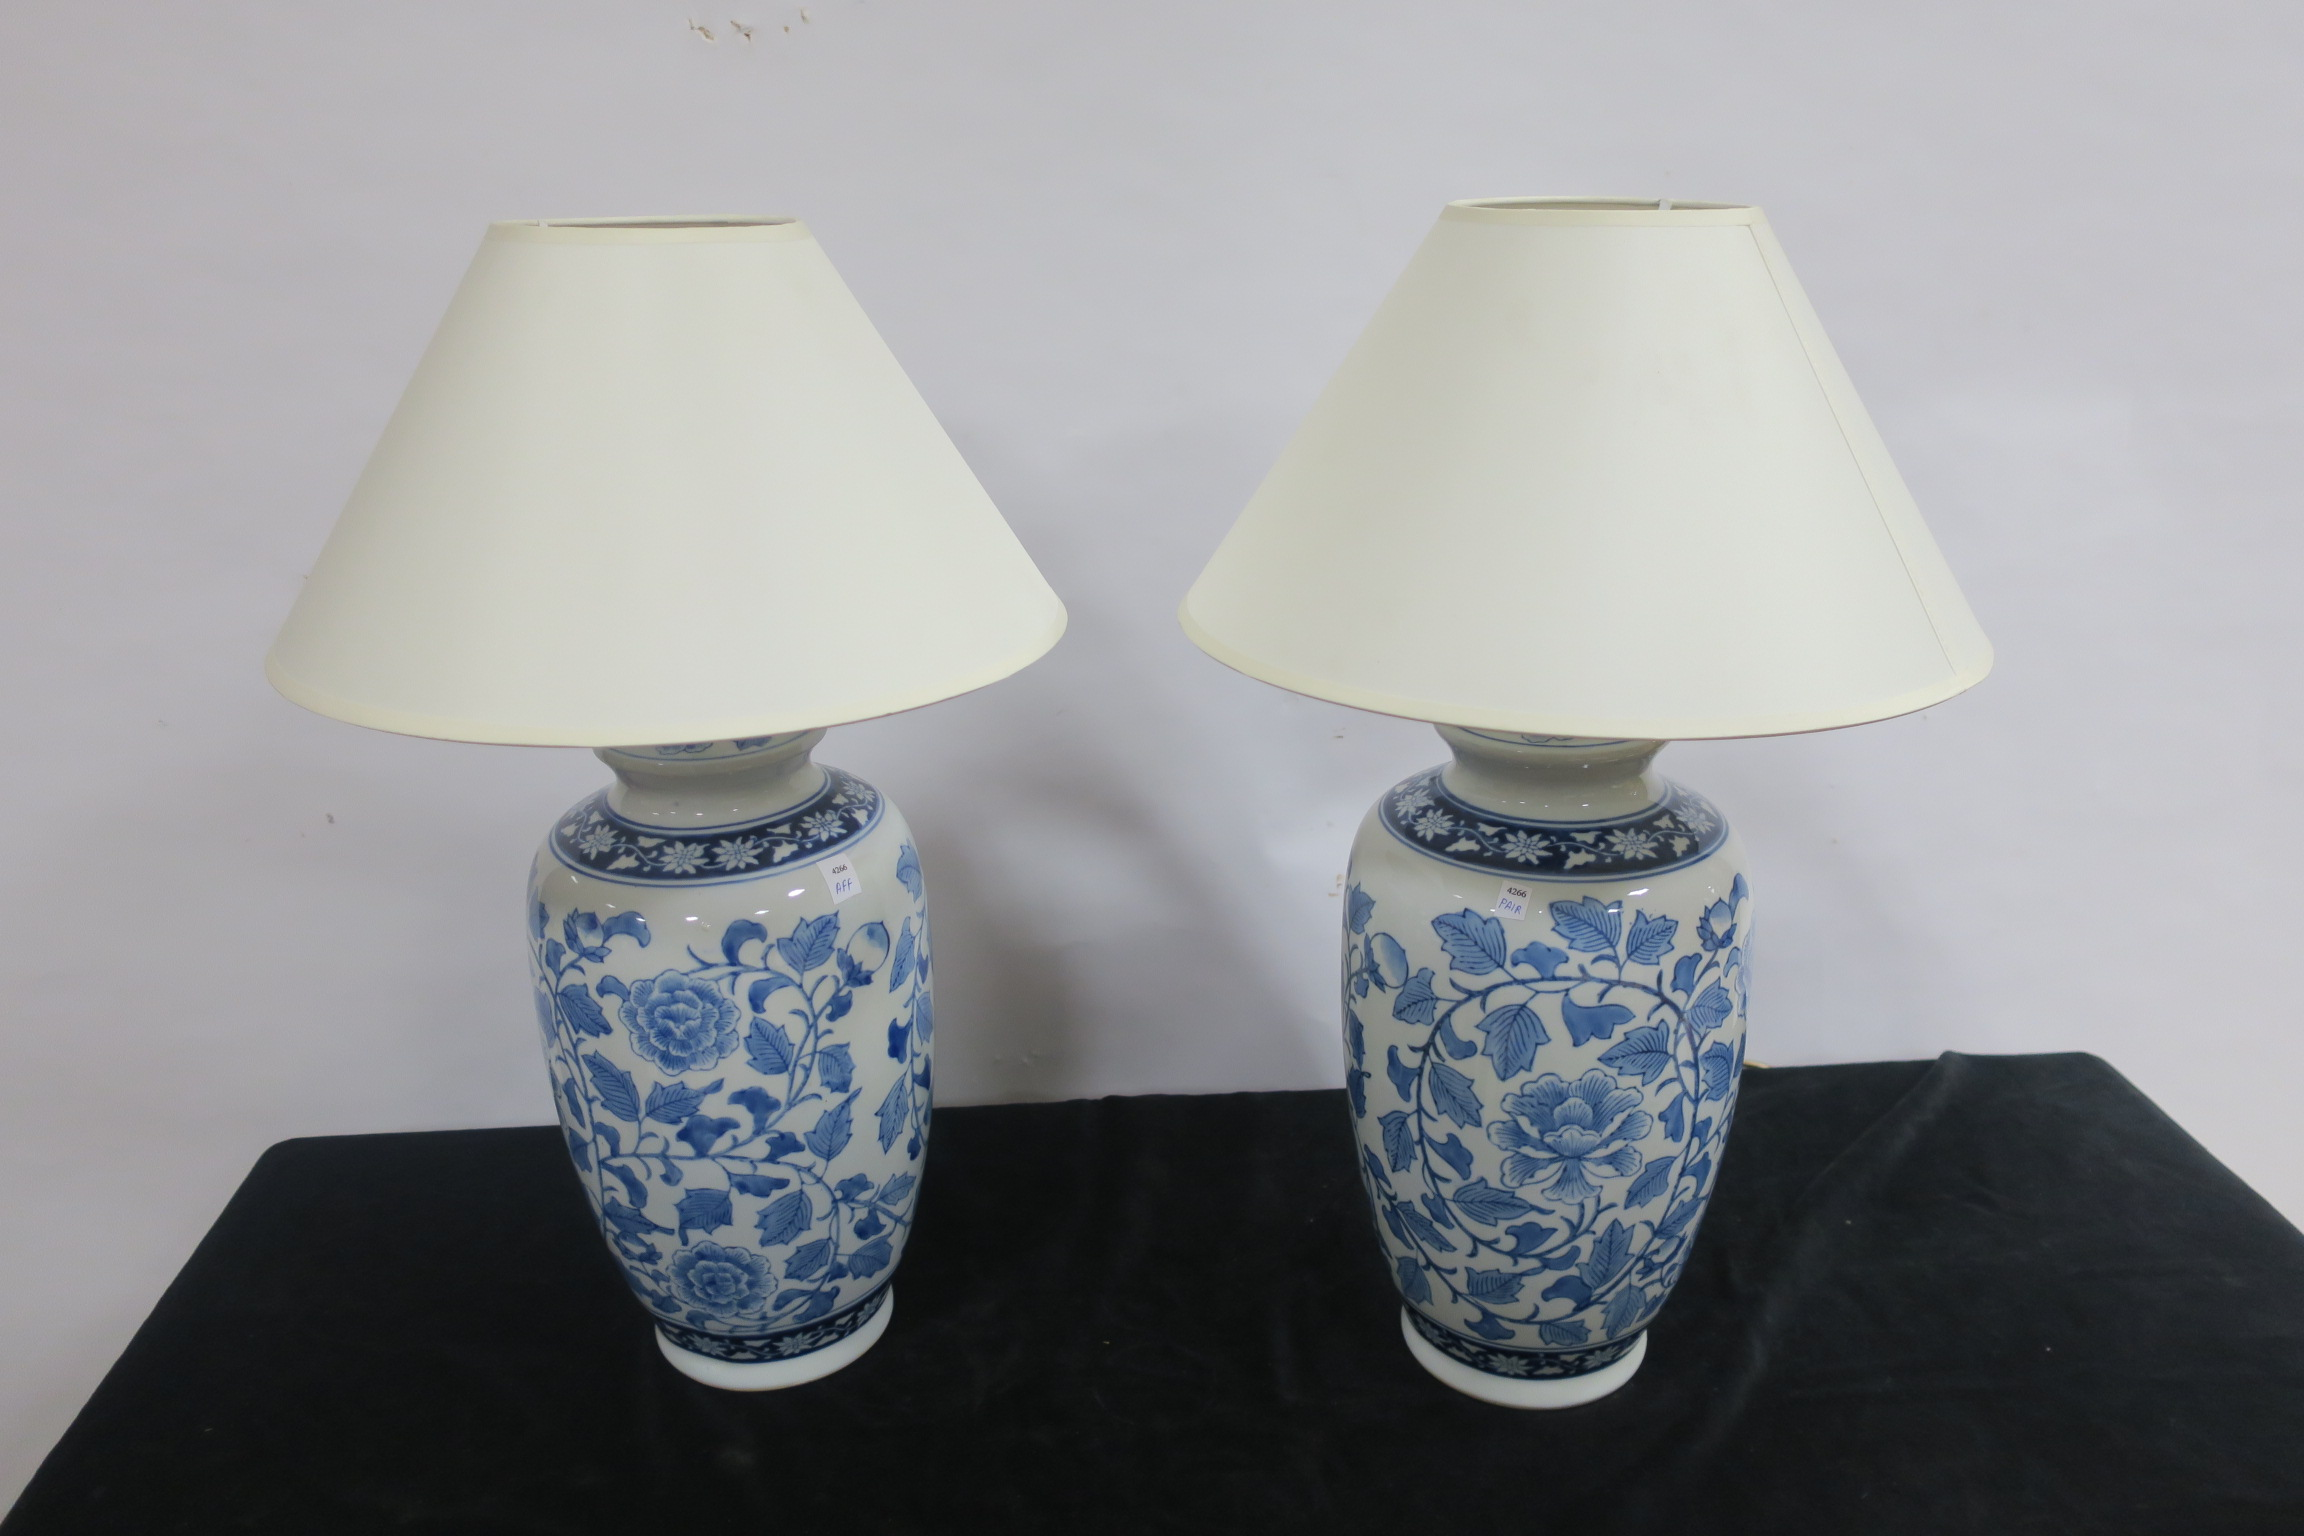 Lot 206 - A PAIR OF PORCELAIN TABLE LAMPS,